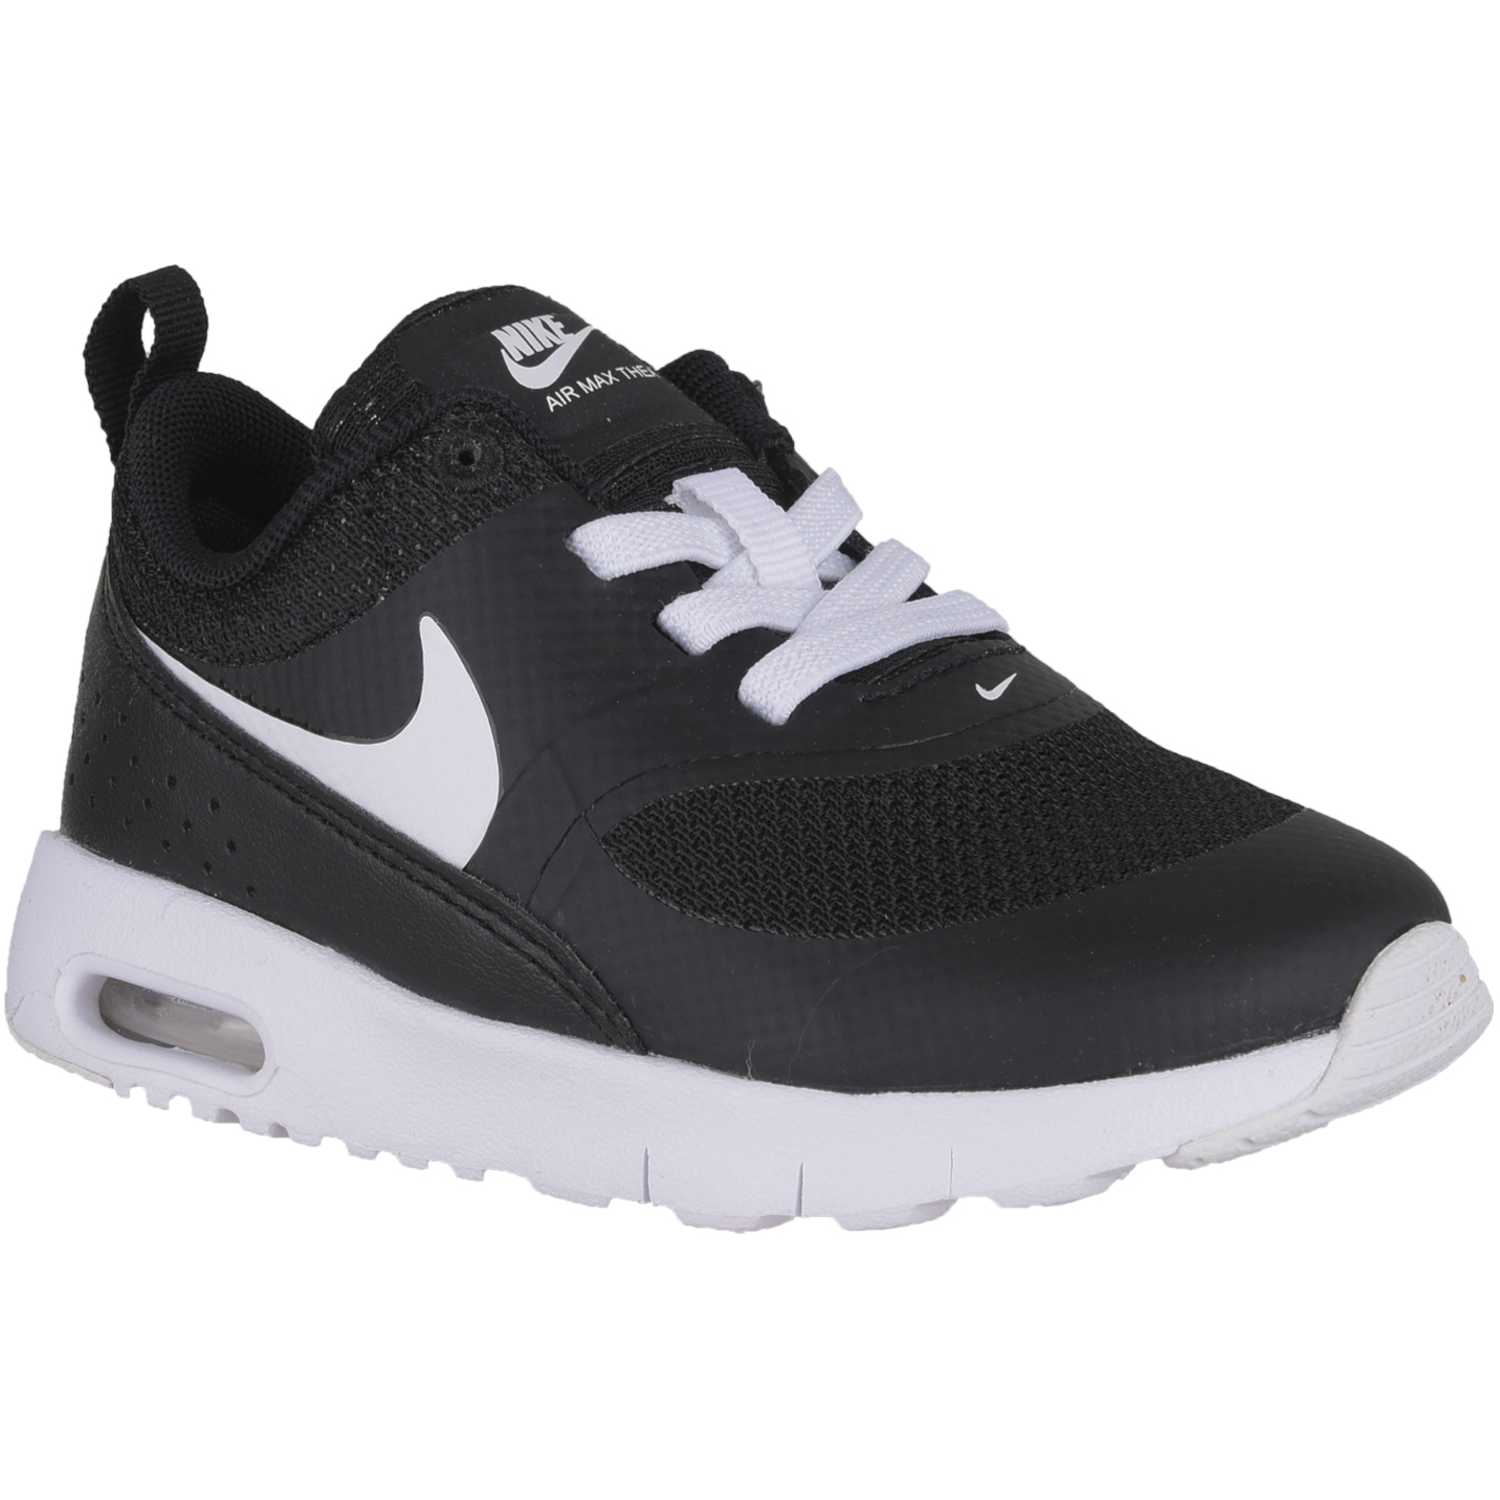 low priced fa570 b3a02 Zapatilla de Niña Nike Negro  Blanco air max thea gte